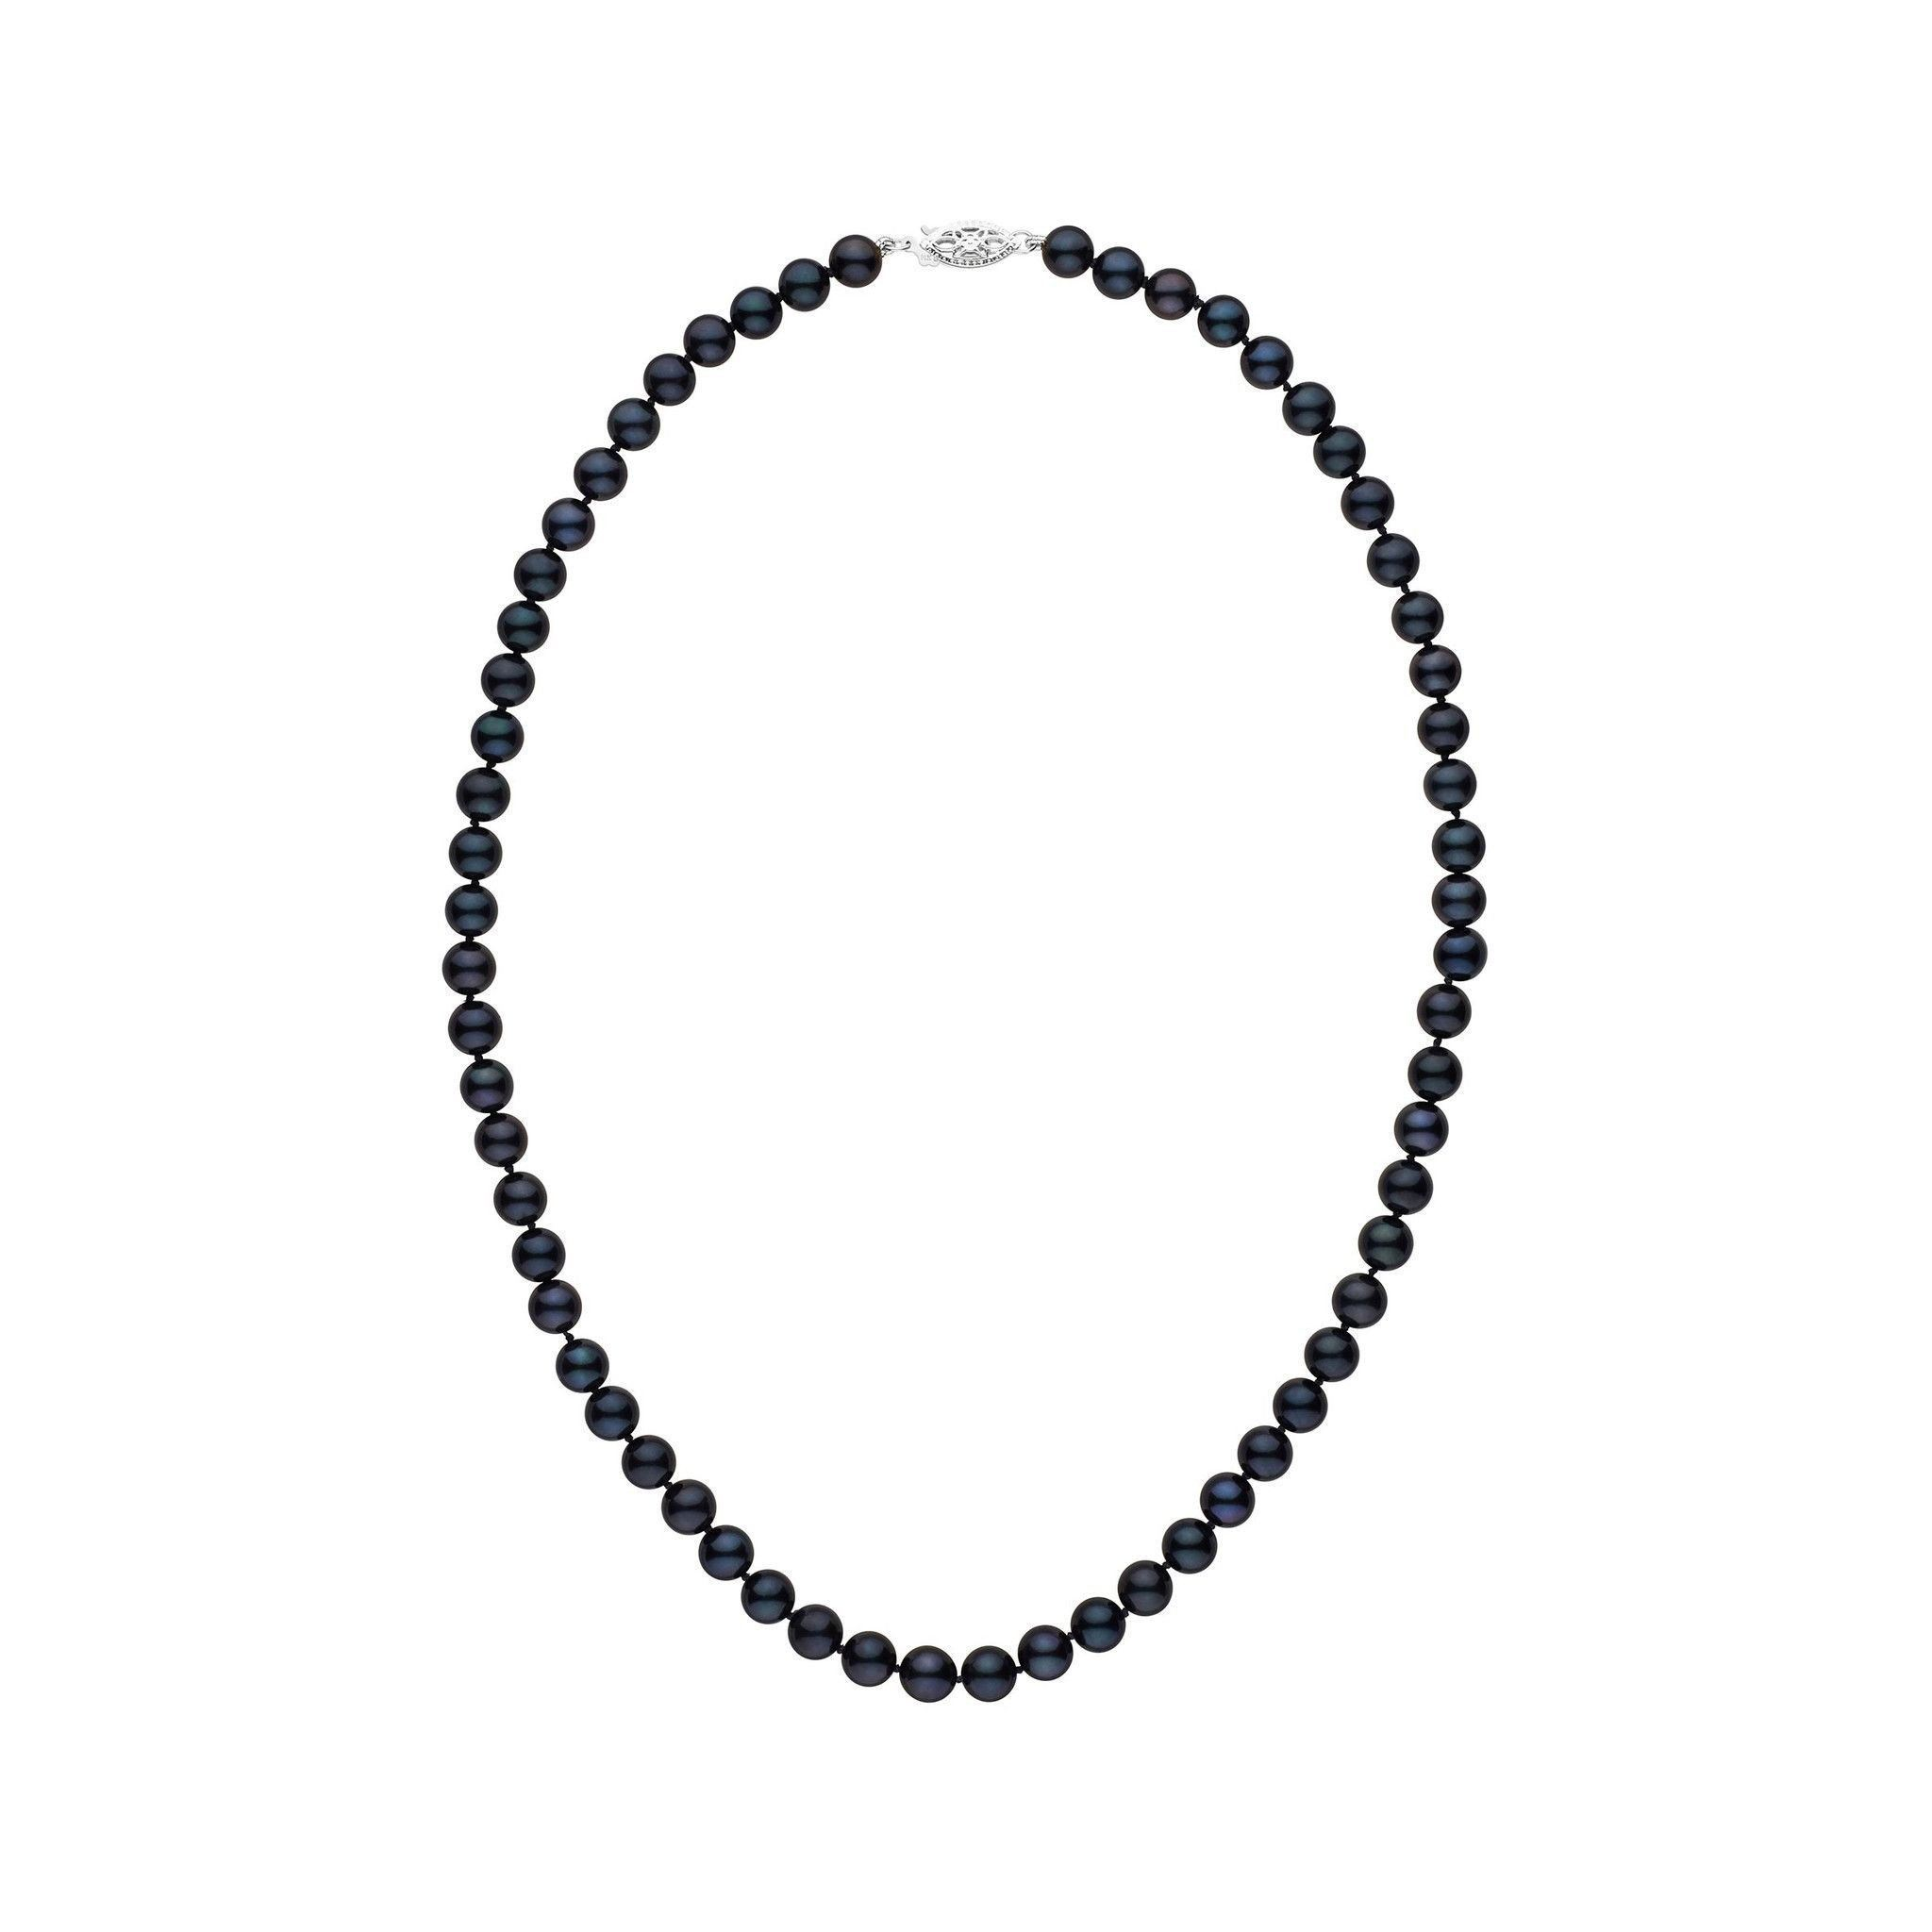 6.0-6.5 mm 16 Inch AA+ Black Akoya Pearl Necklace